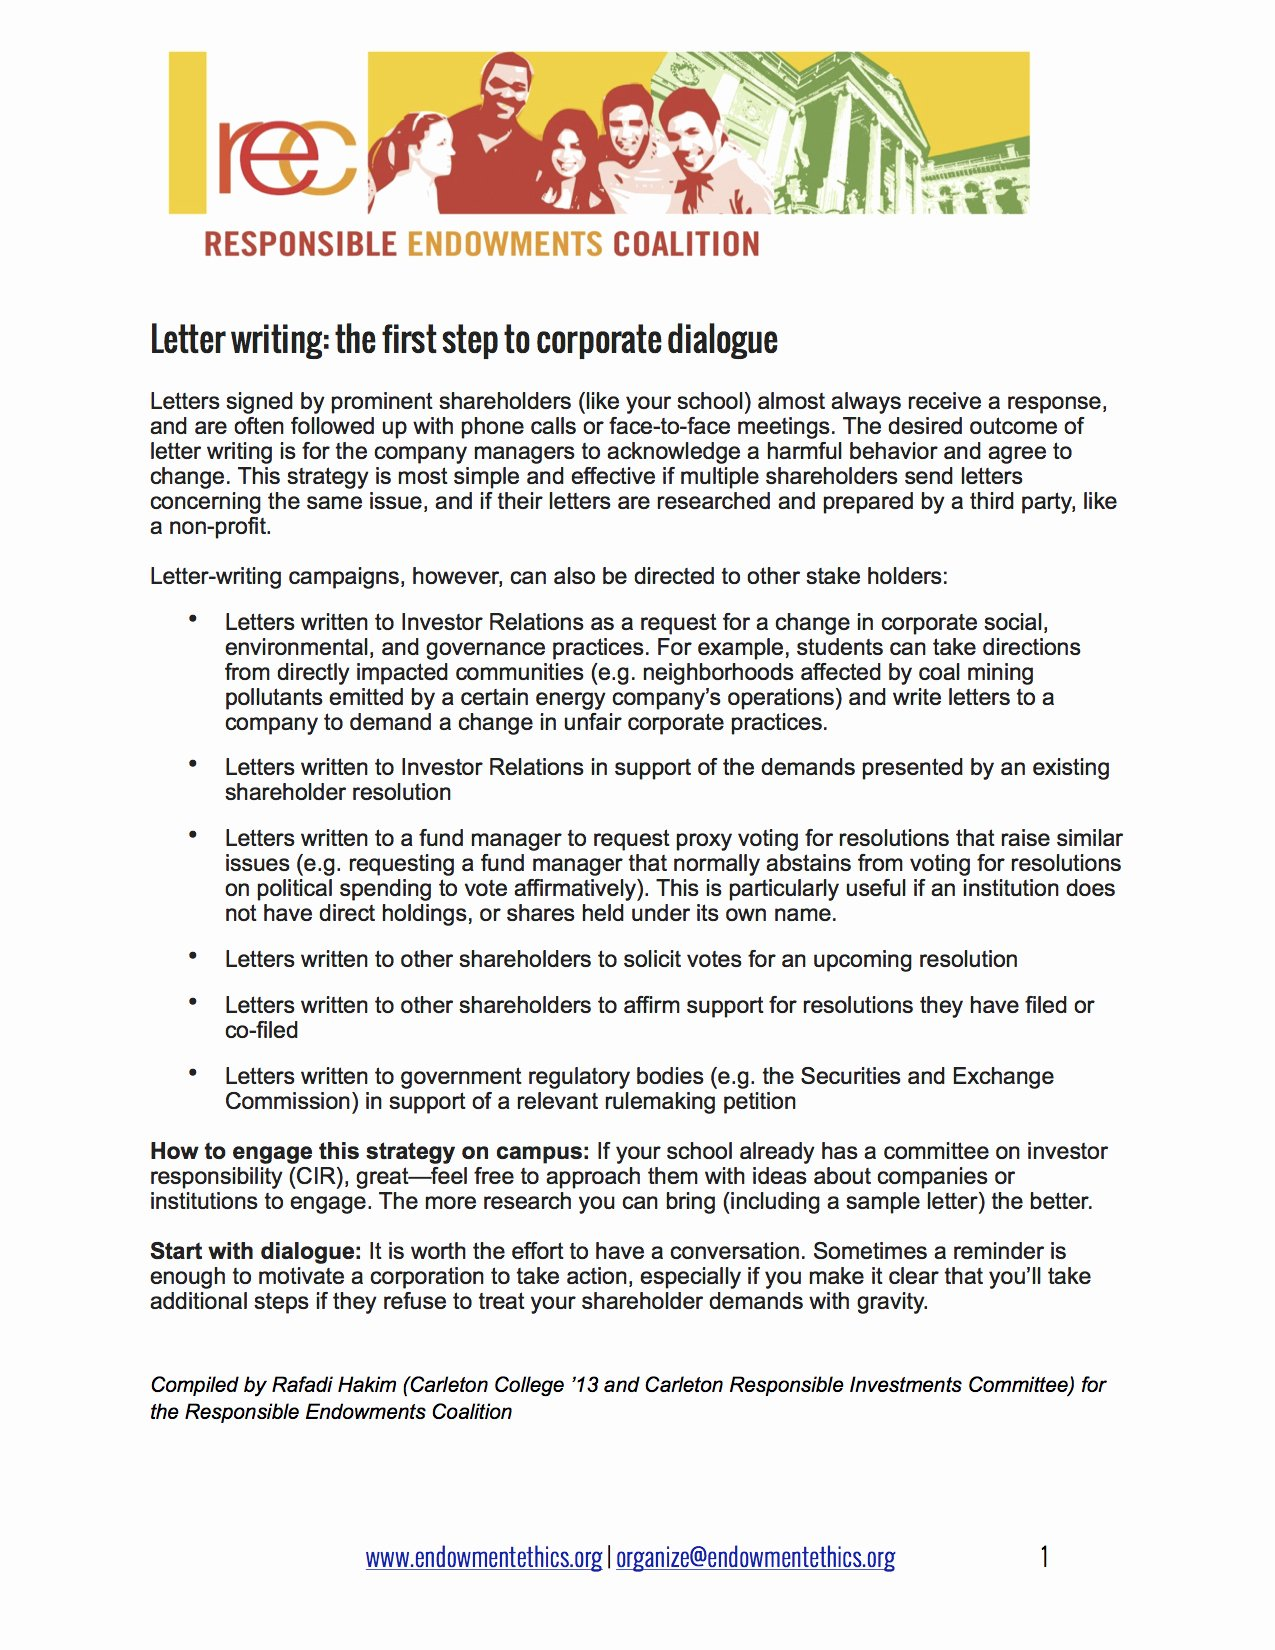 Letter to Shareholders Template New Mittees Resources Responsible Endowments Coalition